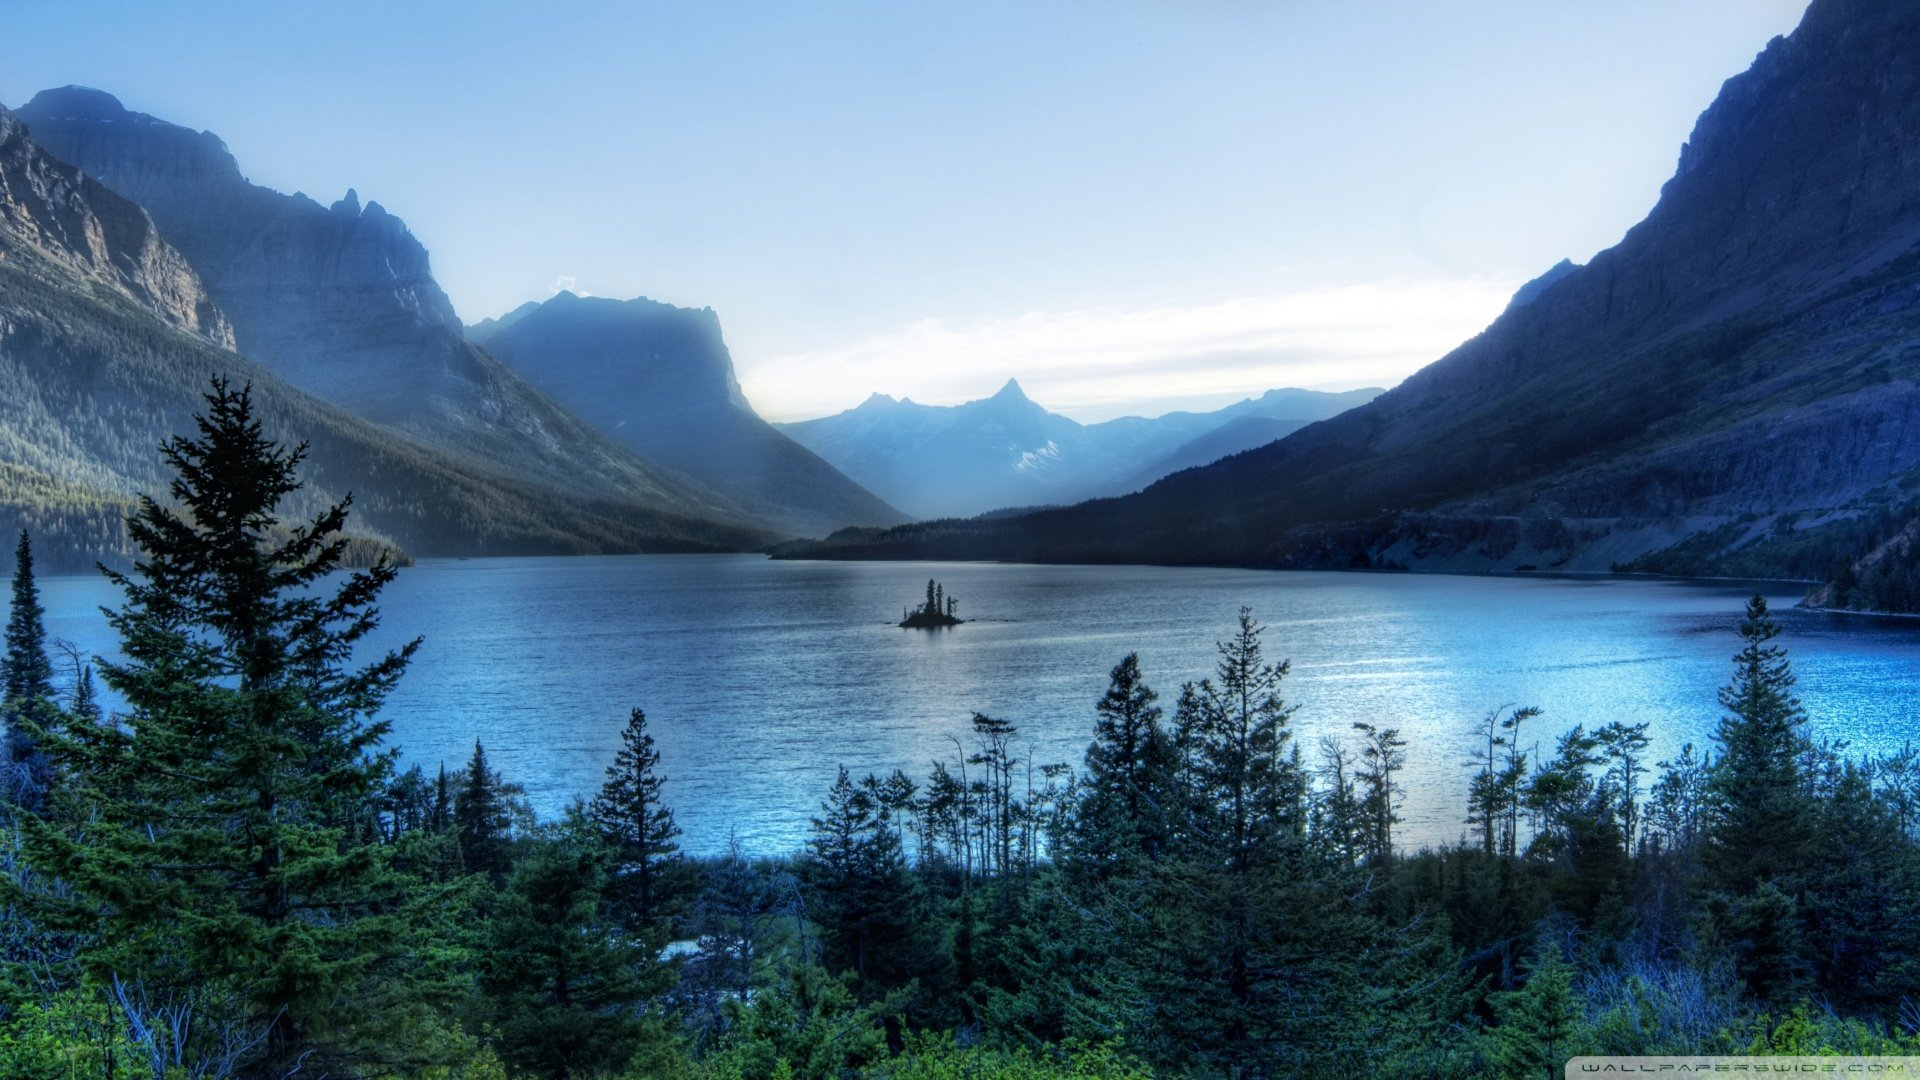 National Park Wallpaper 1920x1080 Morning At Glacier National Park 1920x1080